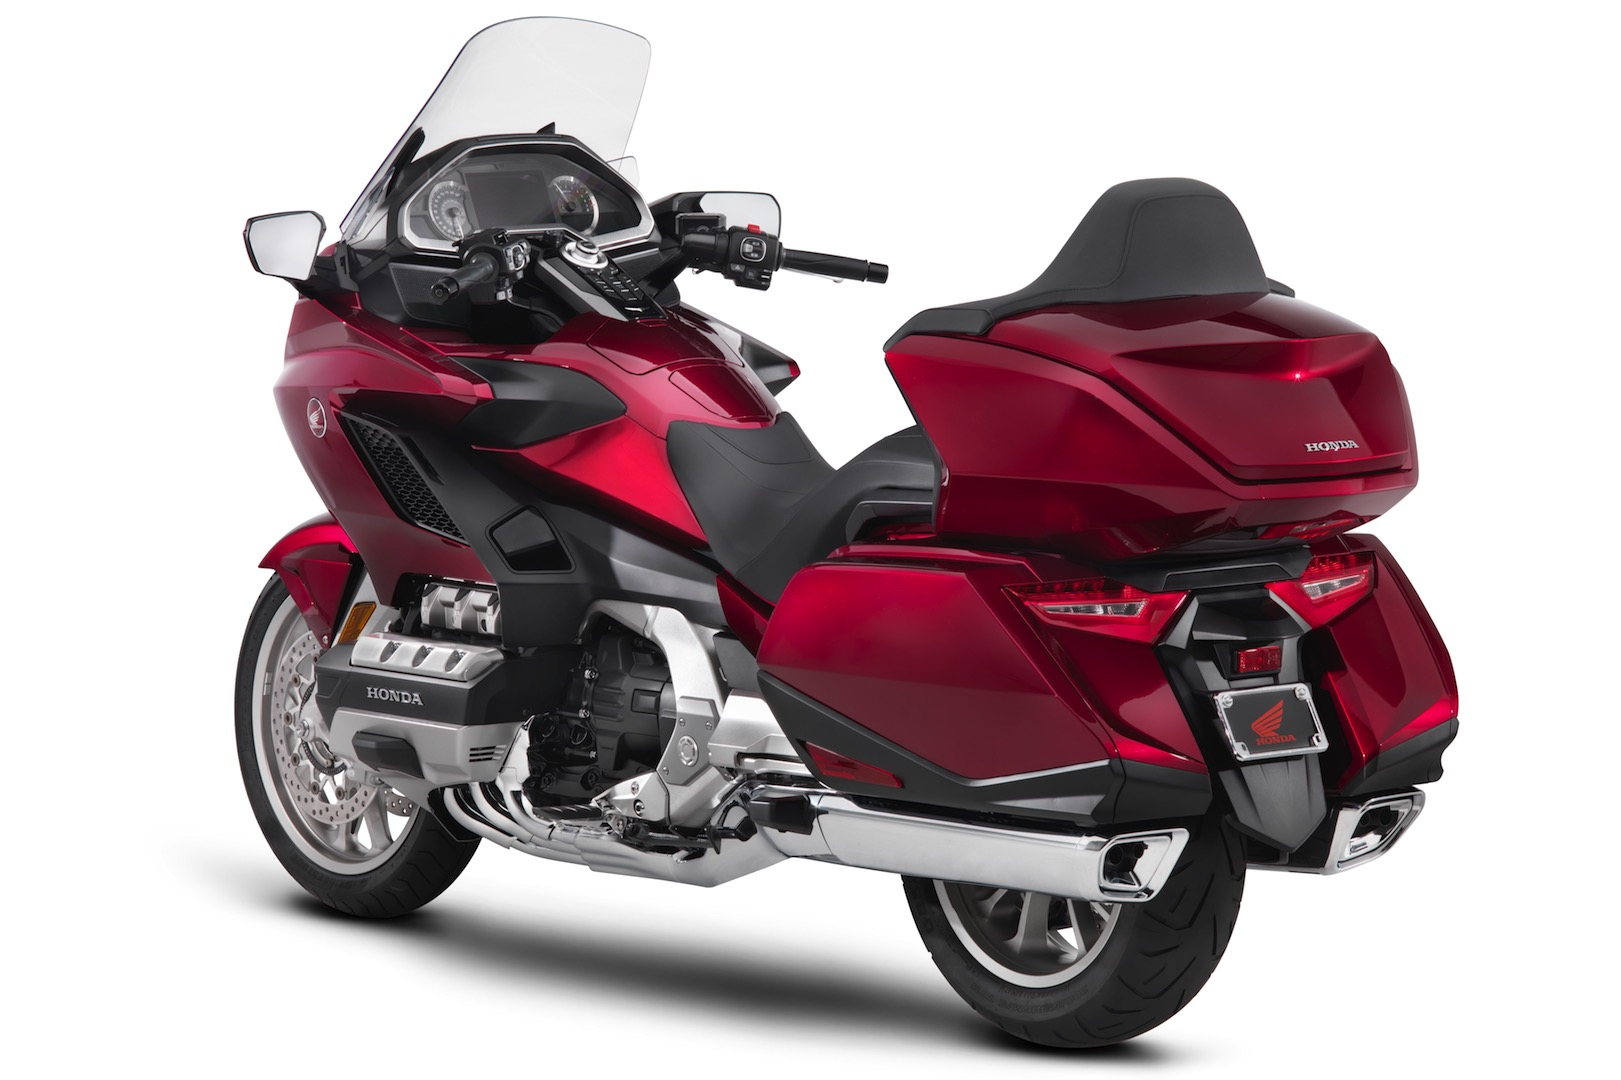 2018 honda gold wing first look 18 fast facts 2018 honda gold wing specs fandeluxe Gallery